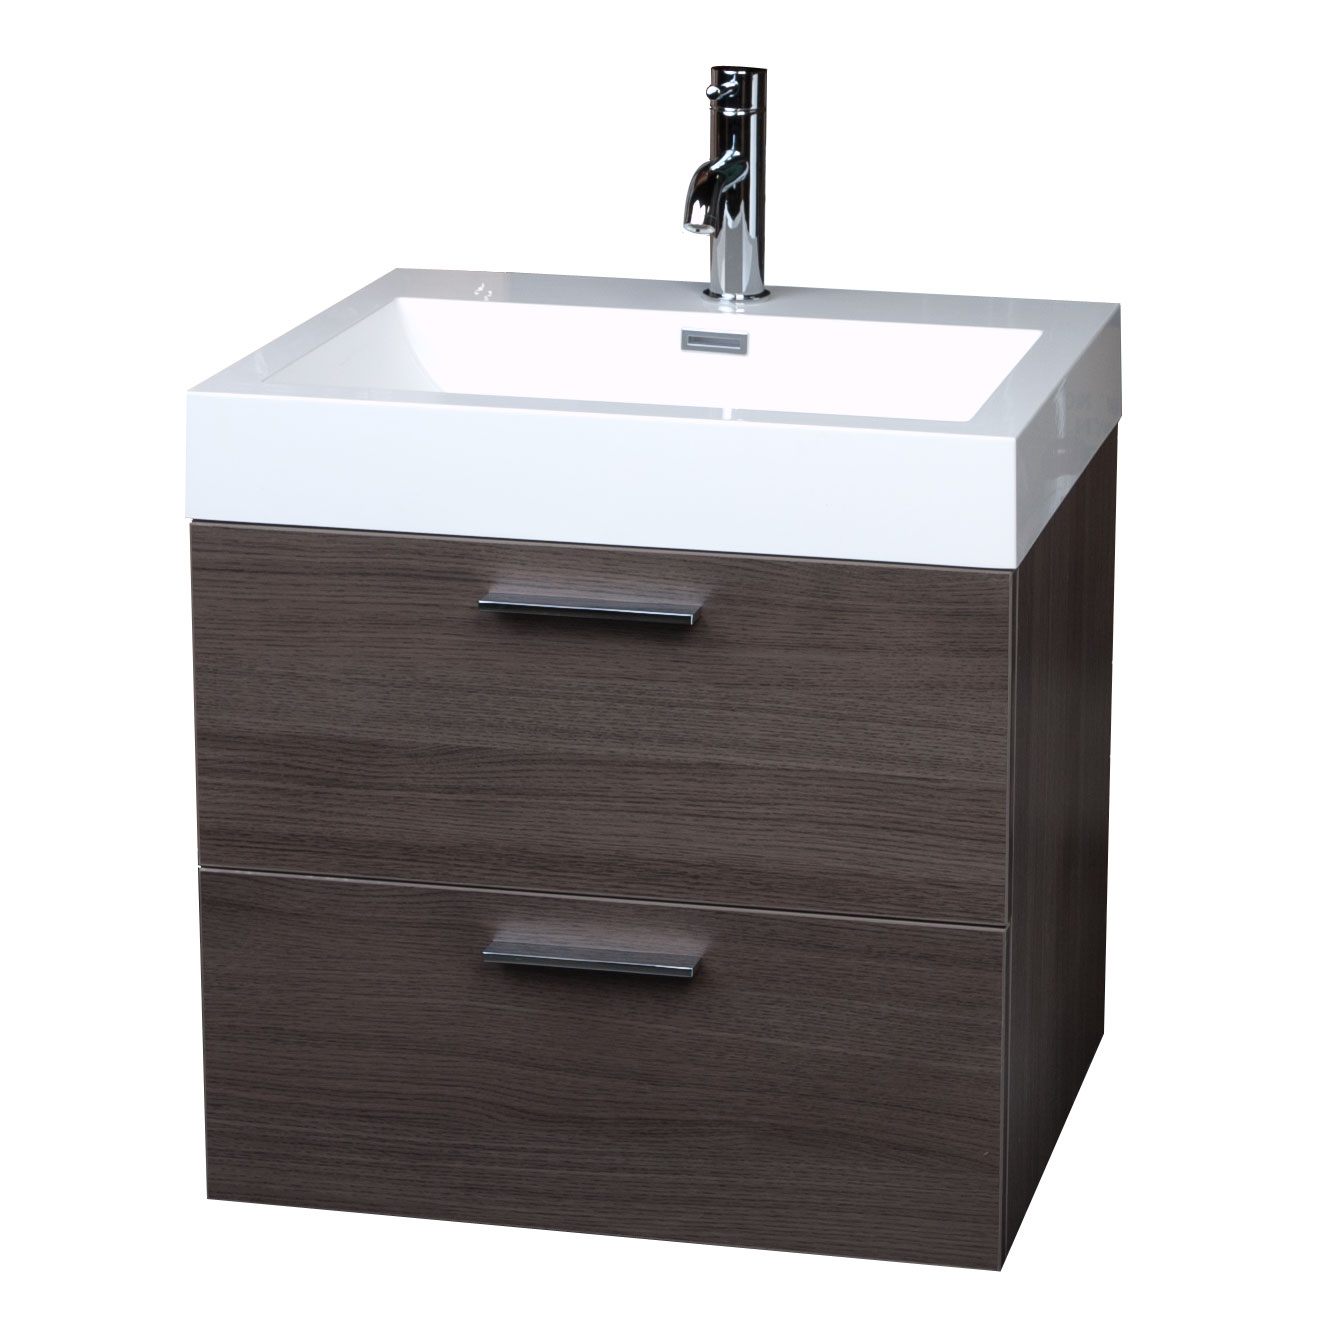 European styled single bathroom vanity set in grey oak for Bath and vanity set